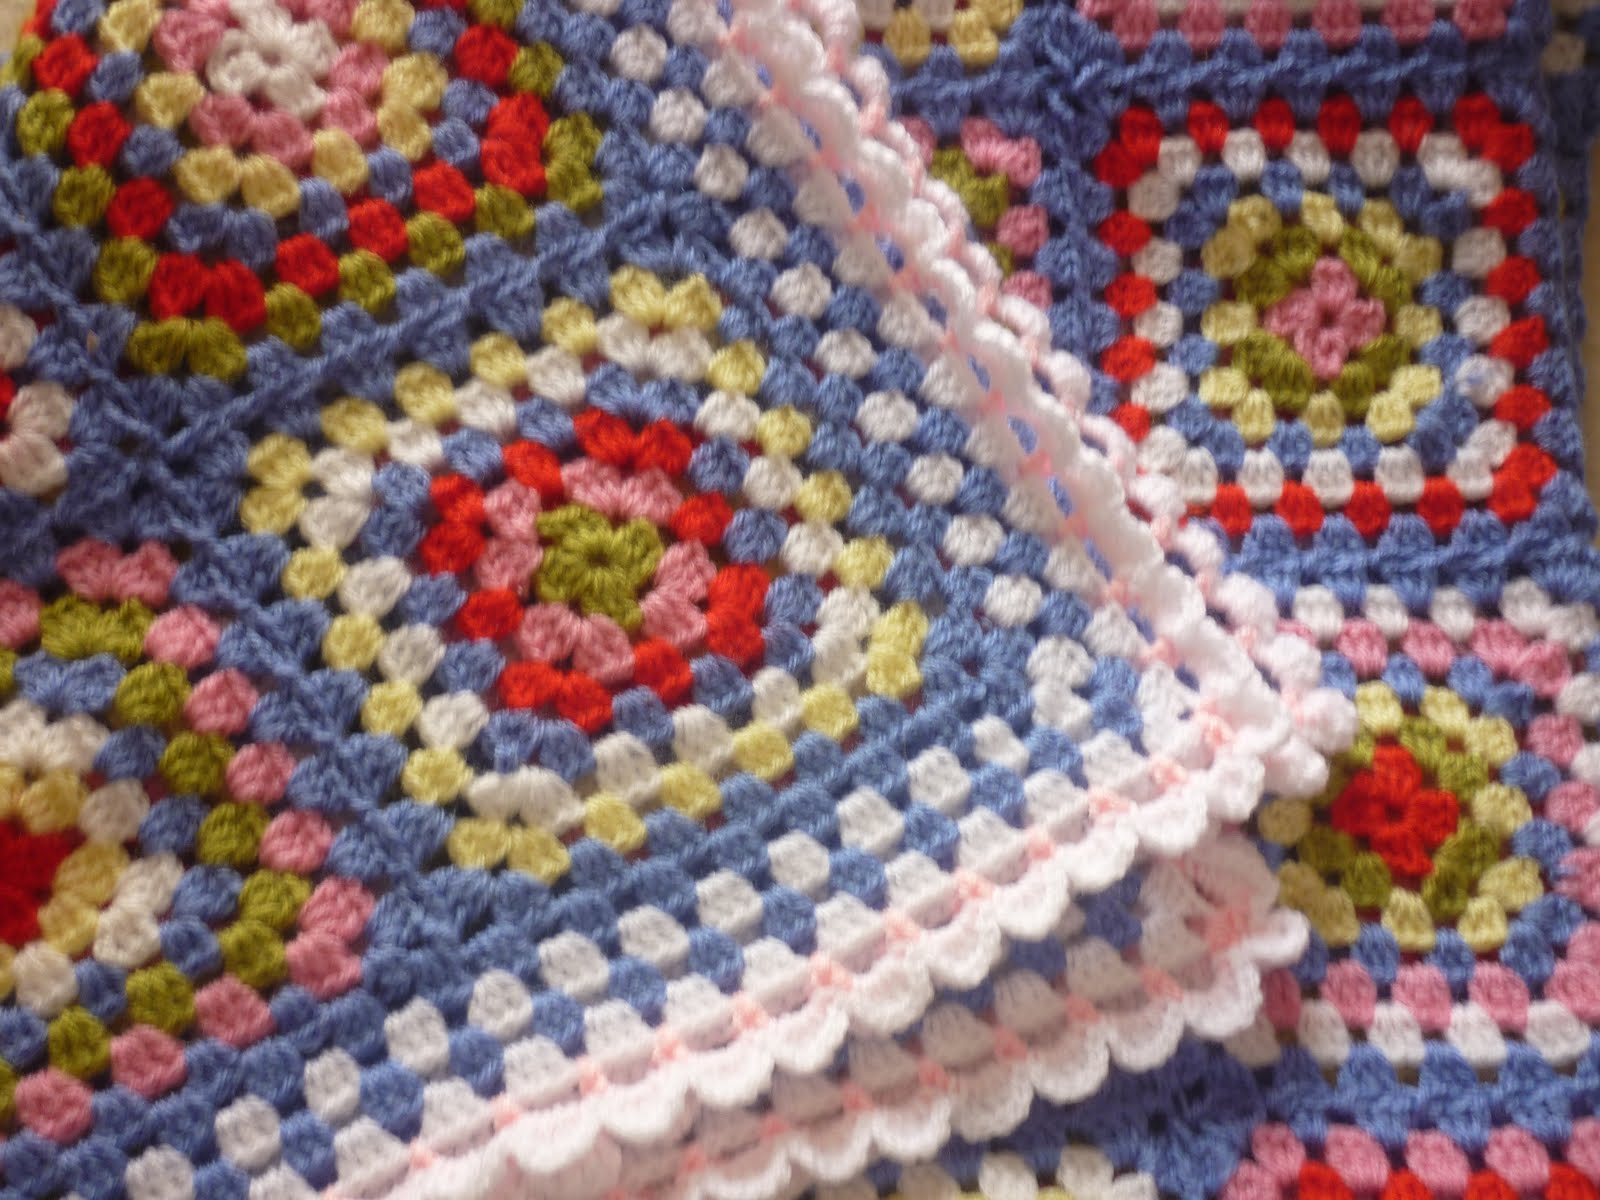 Crochet A Blanket : Helens Colourful Crochet Blankets: A blue crochet blanket In Cath ...